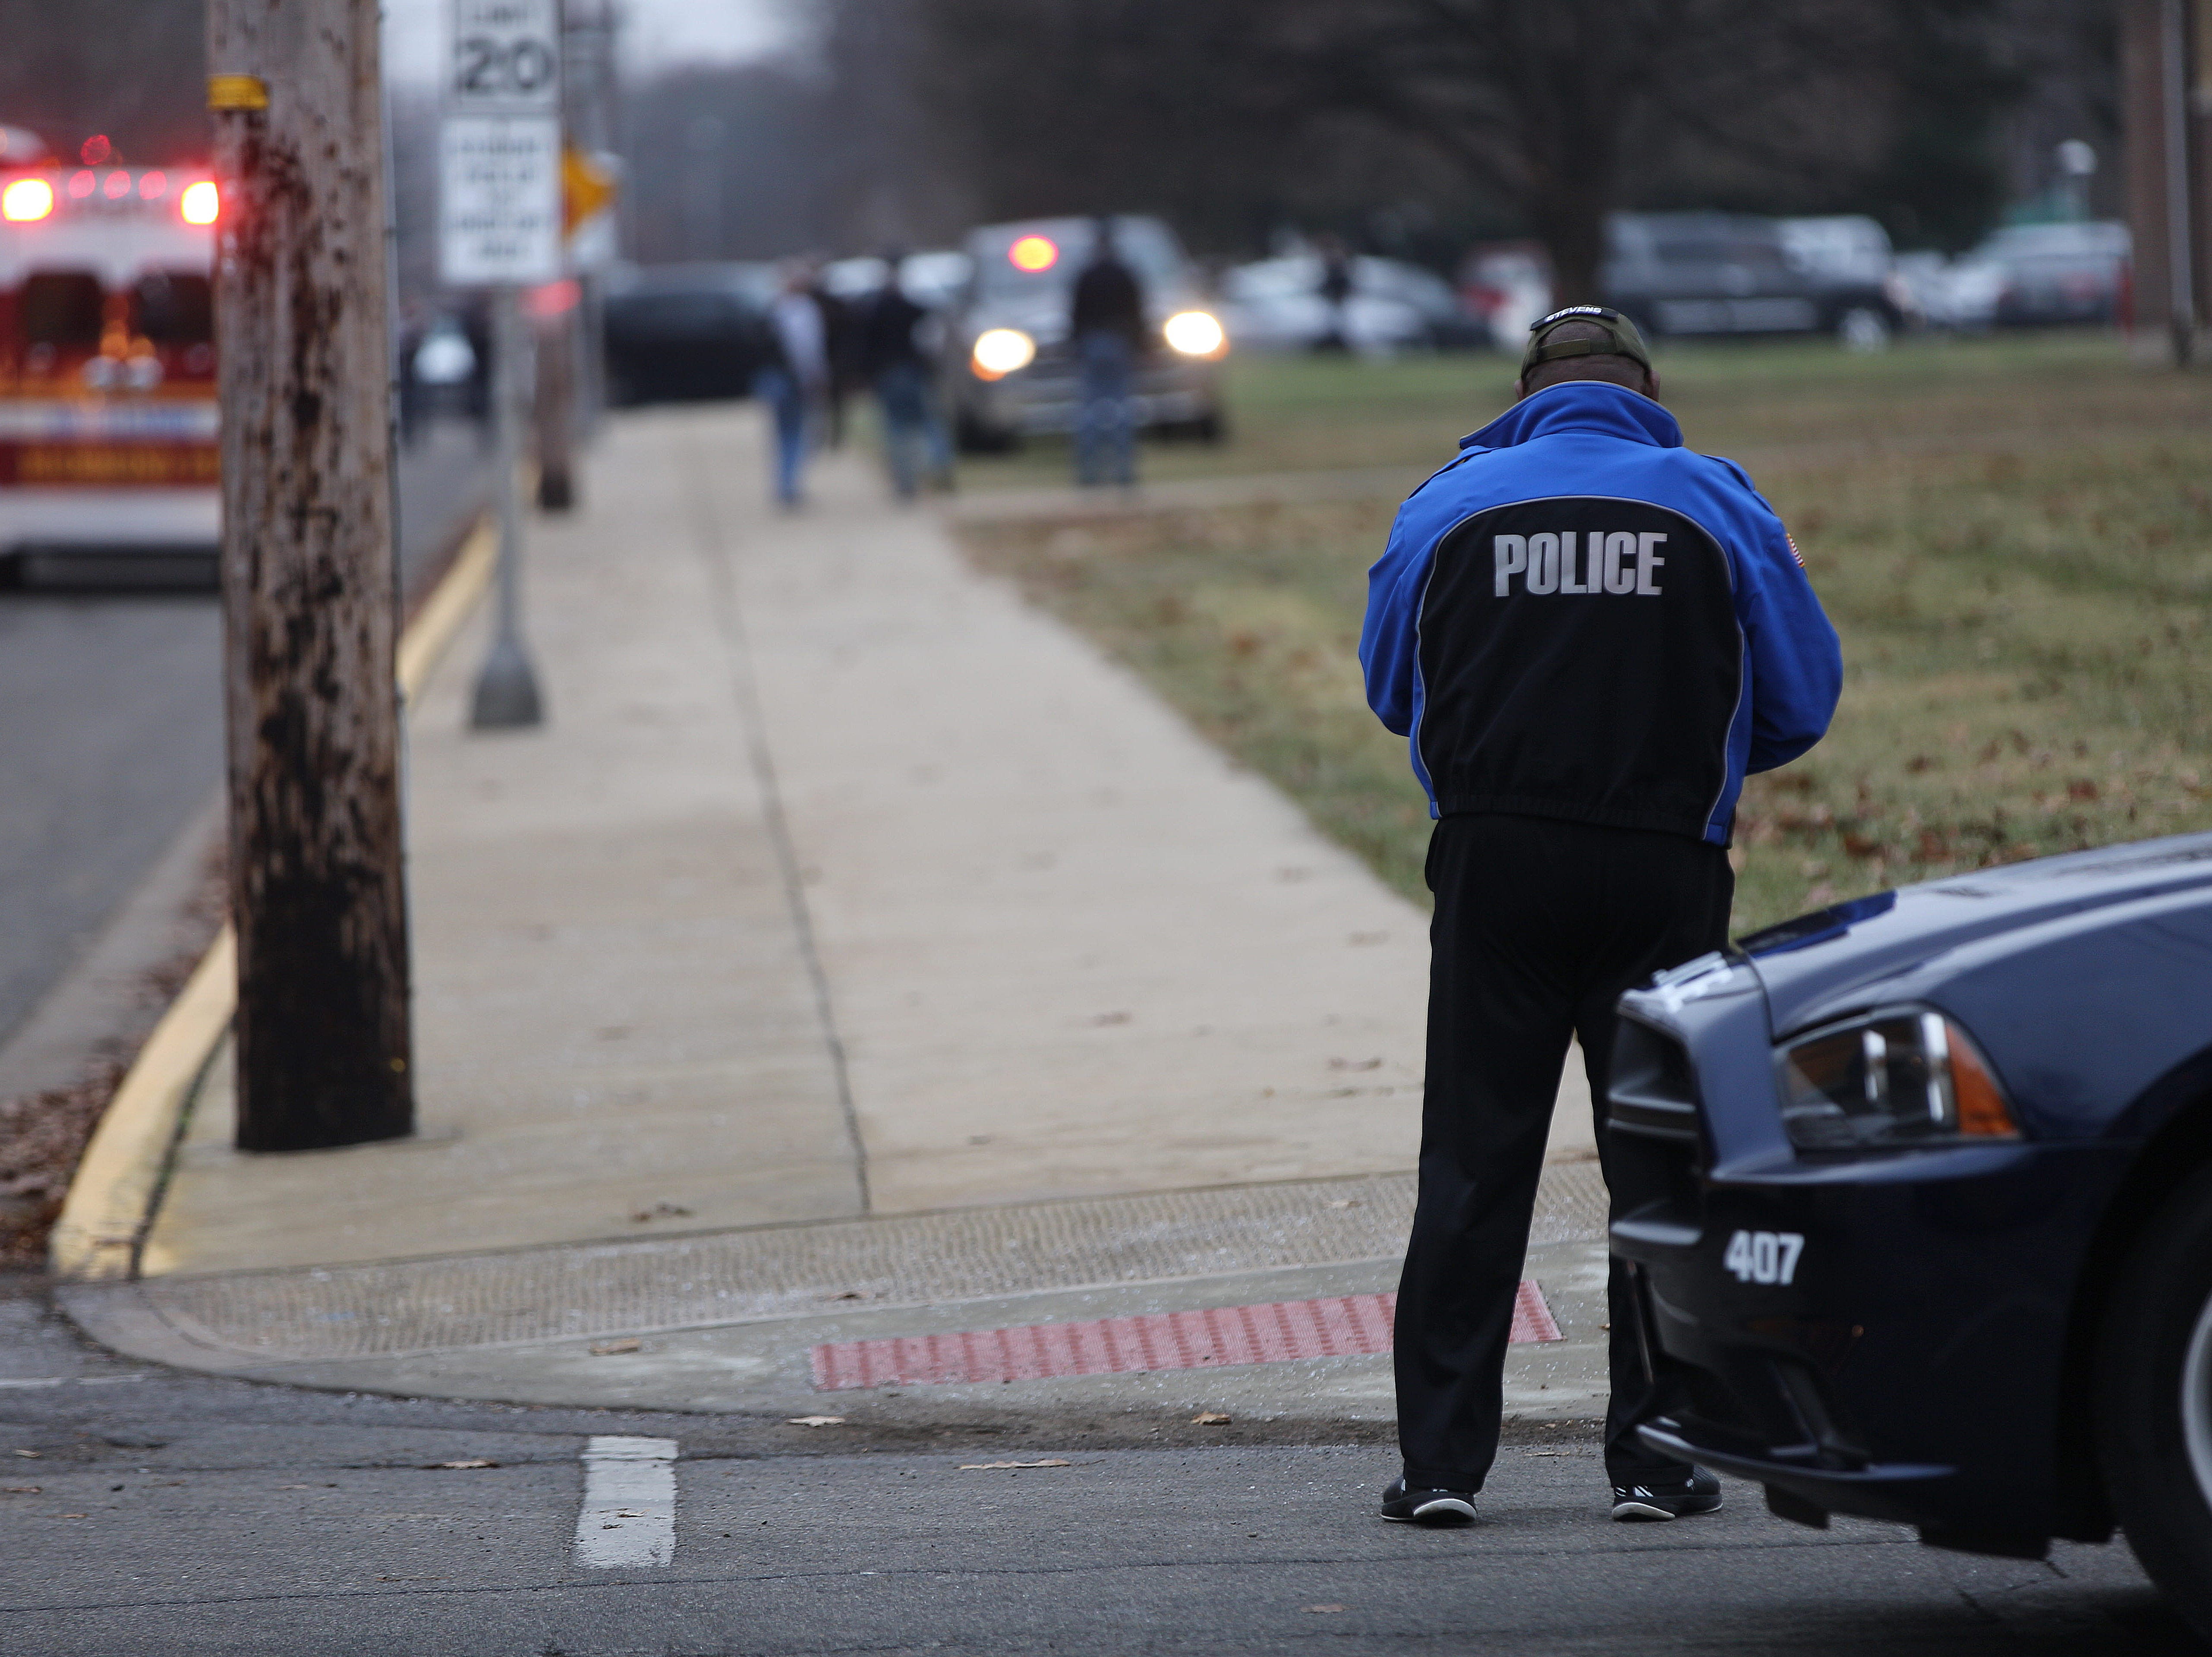 Police escort children onto buses as Dennis Intermediate School is evacuated Thursday following an active shooter on the campus. The only fatality at the school was the shooter who reportedly took his own life.